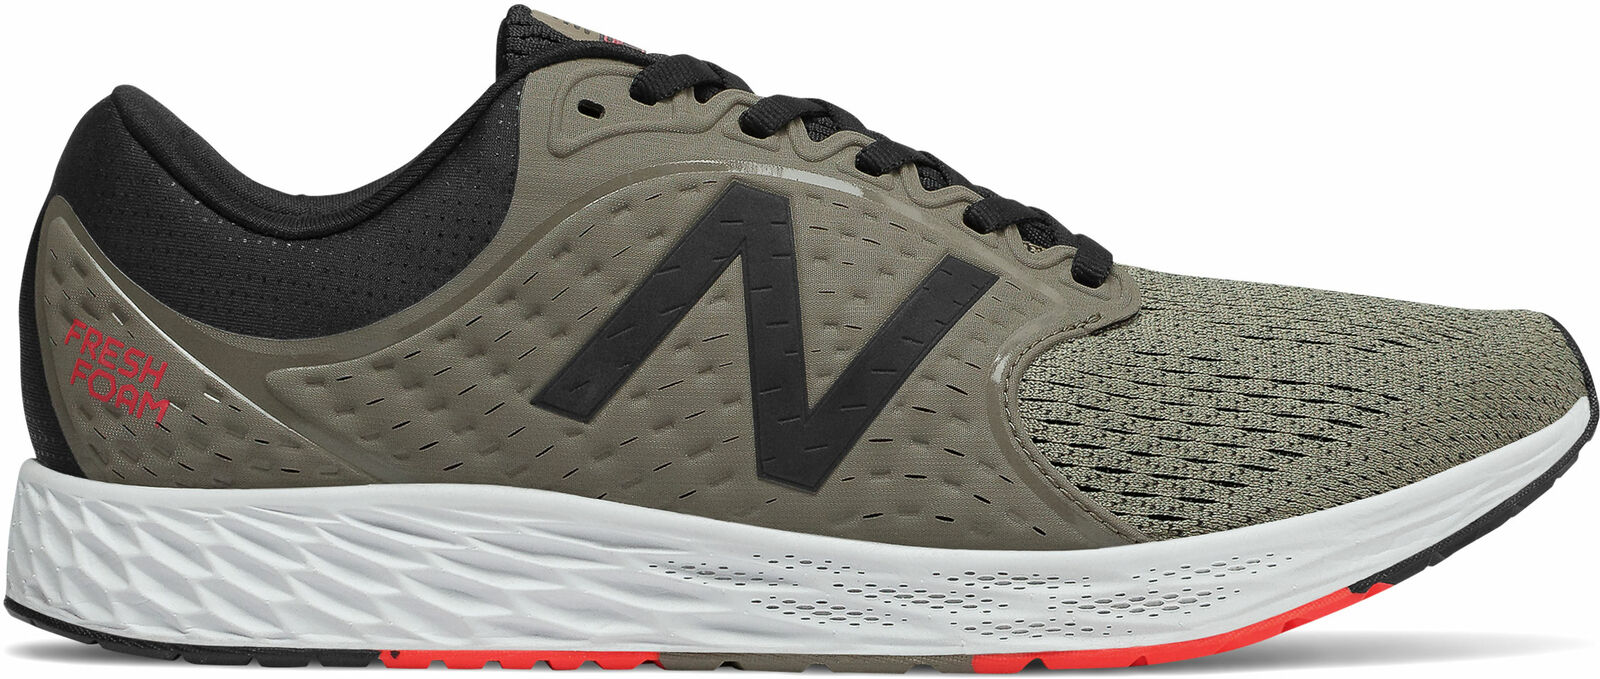 New Balance Men's Fresh Foam Zante v4 MZANTMF4 Grey Marle